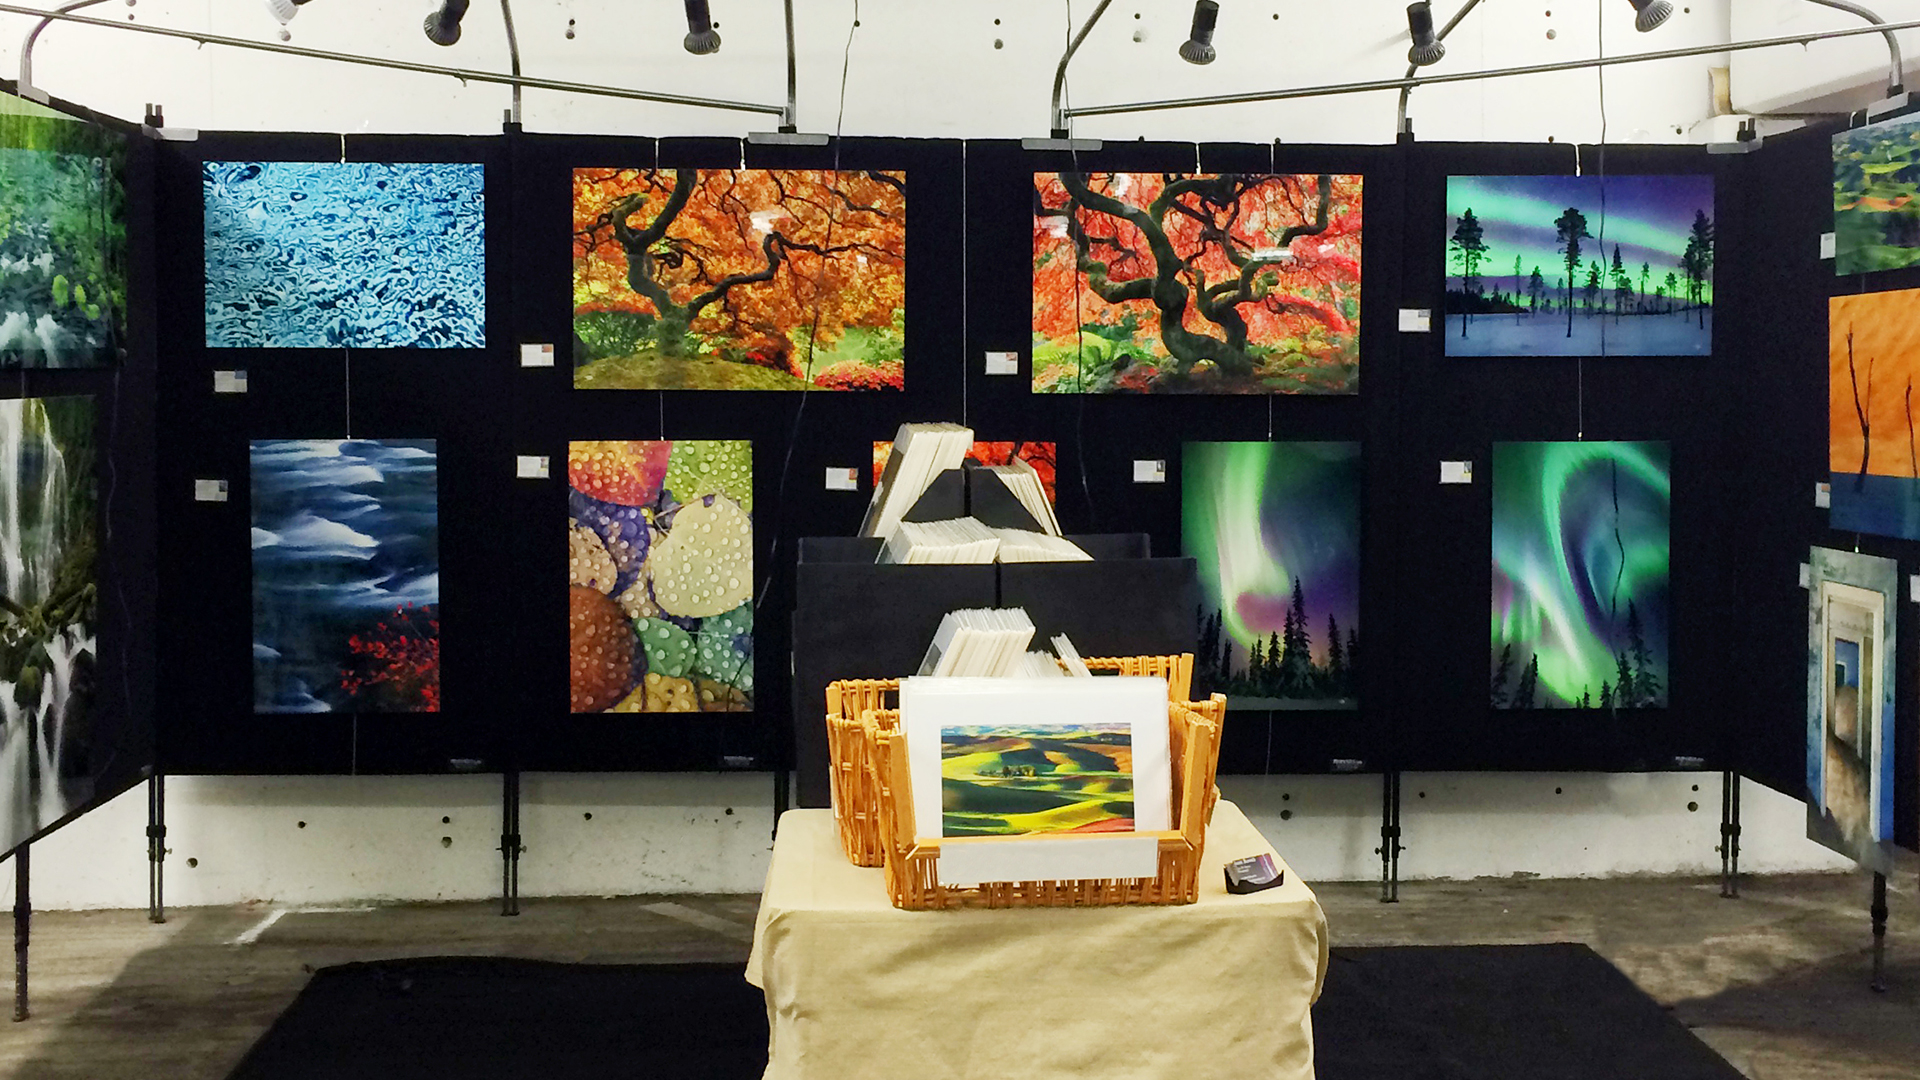 Exhibition of nature photographs